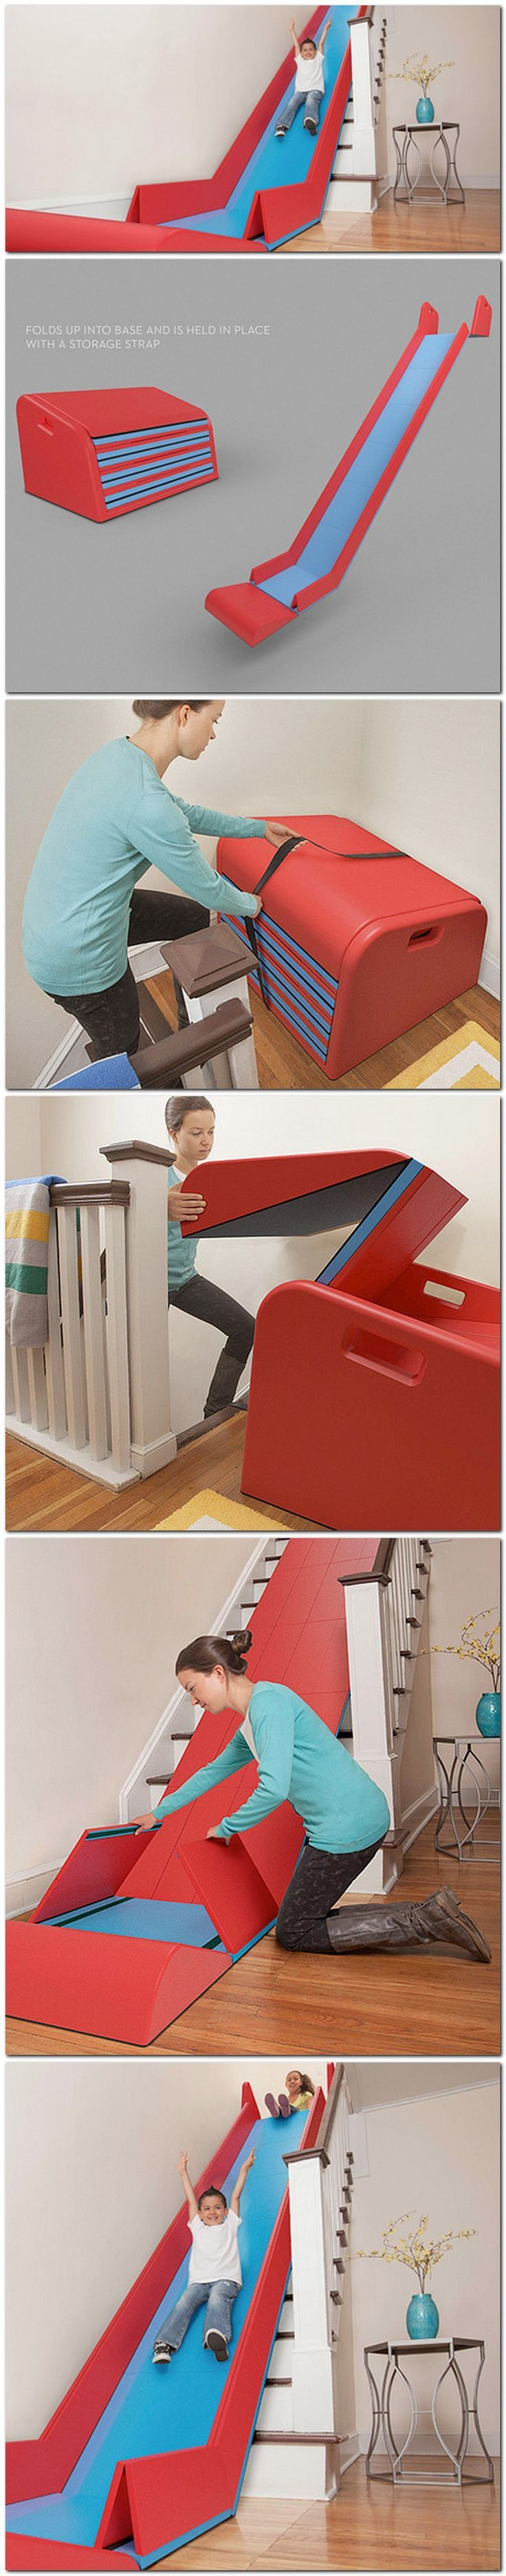 Need this for ourselves..er, I mean the kids